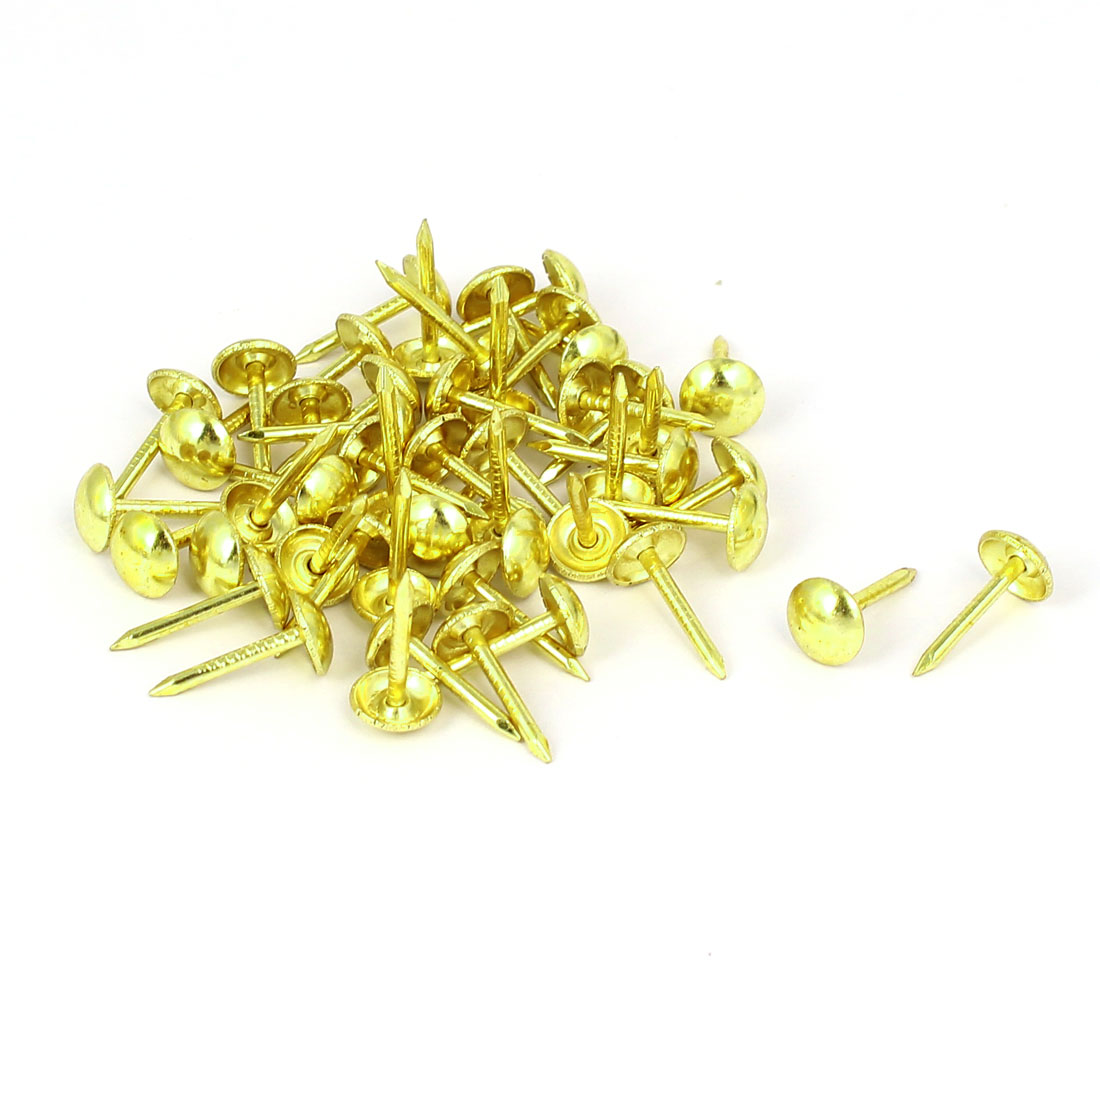 Leather Sofa Round Head Upholstery Tack Nail Gold Tone 7mm x 14mm 50pcs